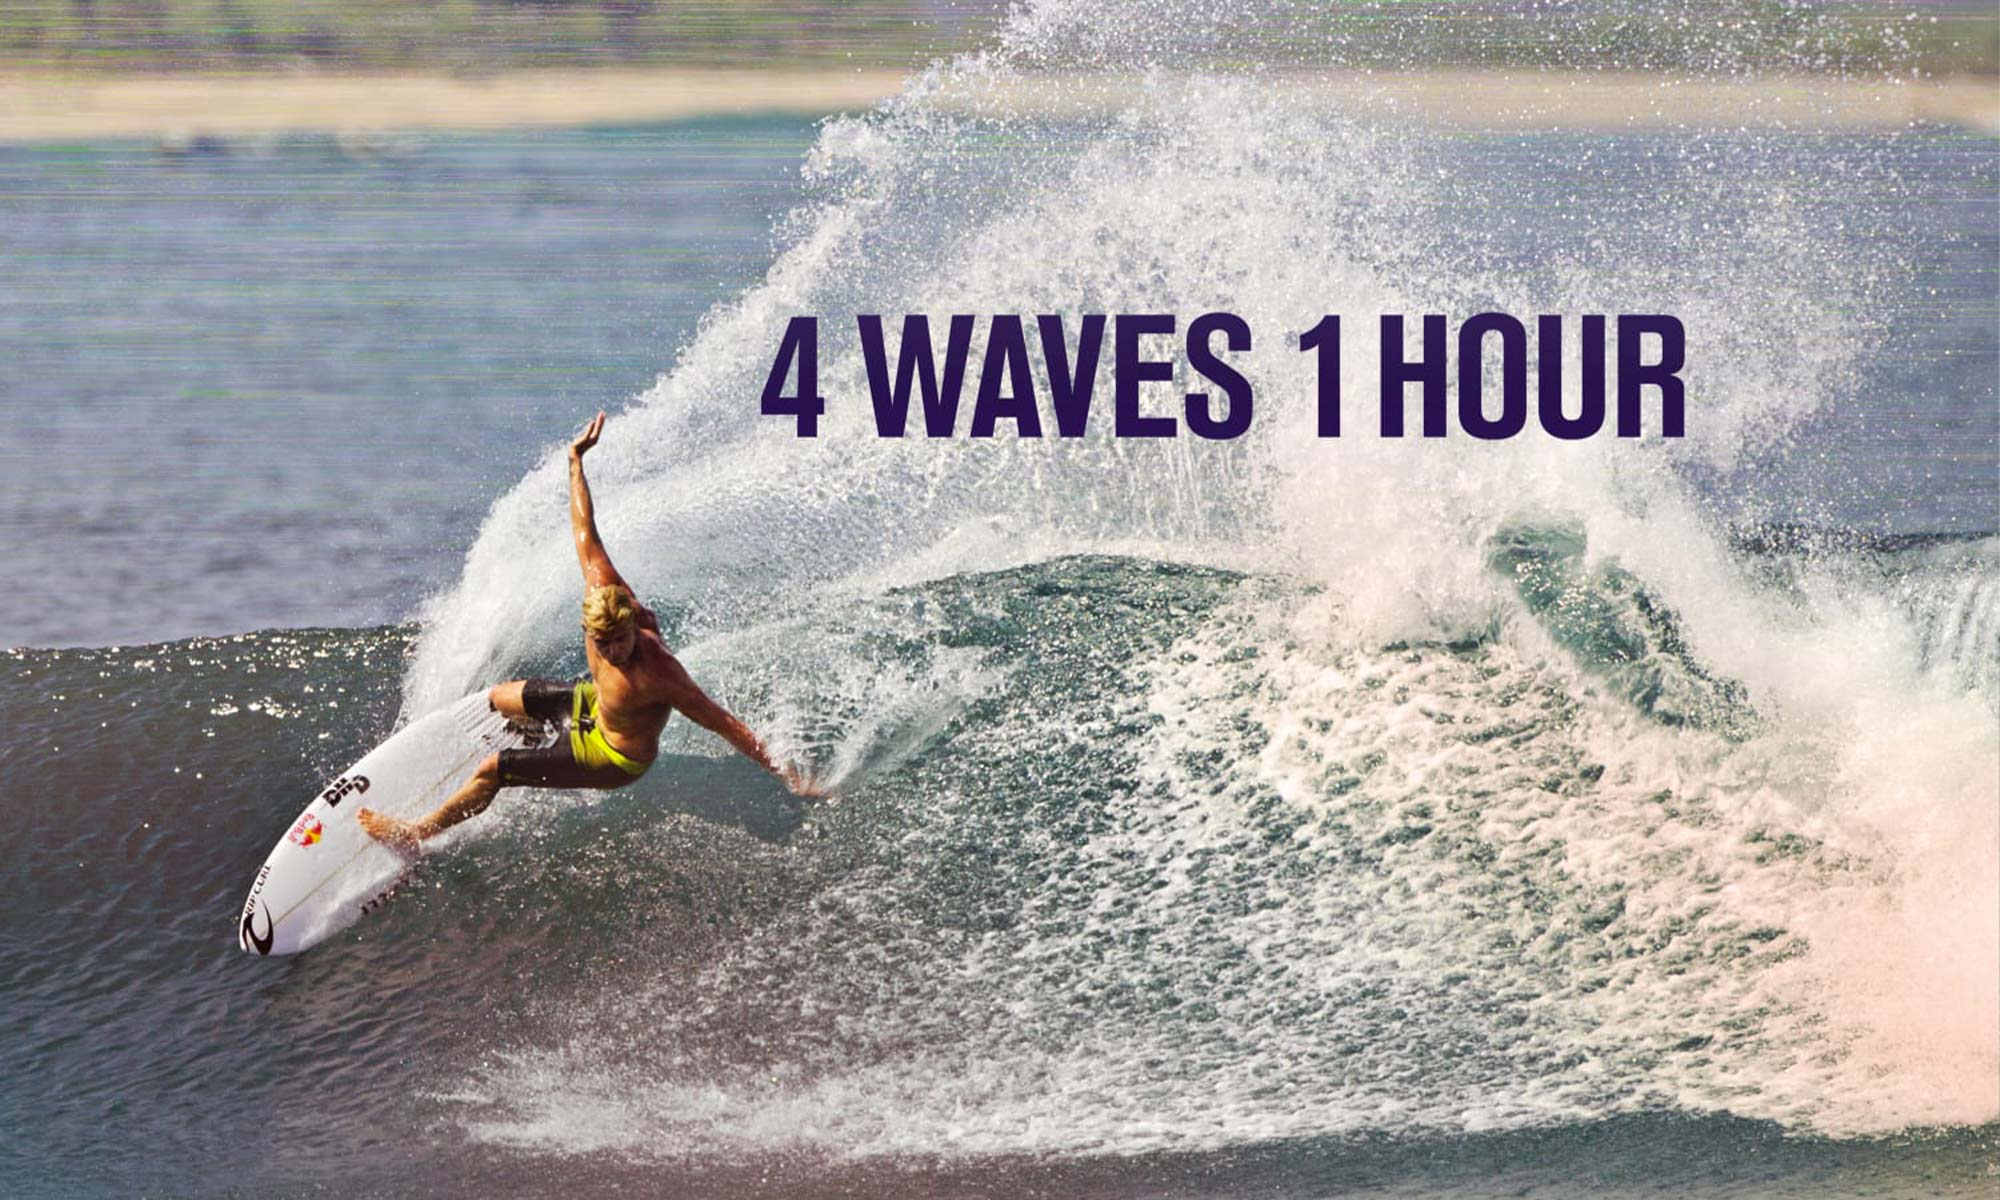 4 waves 1 hour